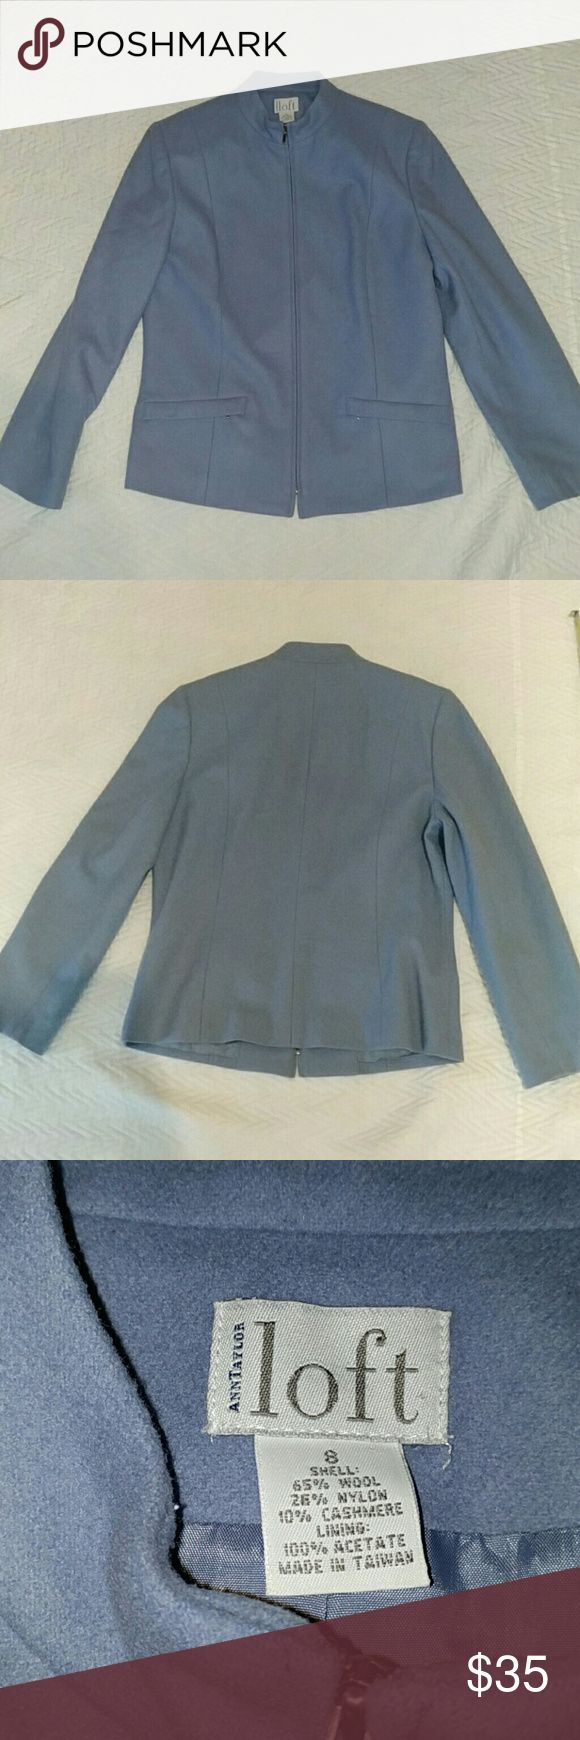 Anne Taylor Loft Light Blue Wool Blend Work Jacket Anne Taylor Loft Great for a Professional Light Blue Size Six Made of     Shell- 65% wool, 25% nylon, 10% cashmere     Lining 100% acetate Measurements in inches    Length 26    Bust 37    Waist 34    Arm 23 LOFT Jackets & Coats Blazers